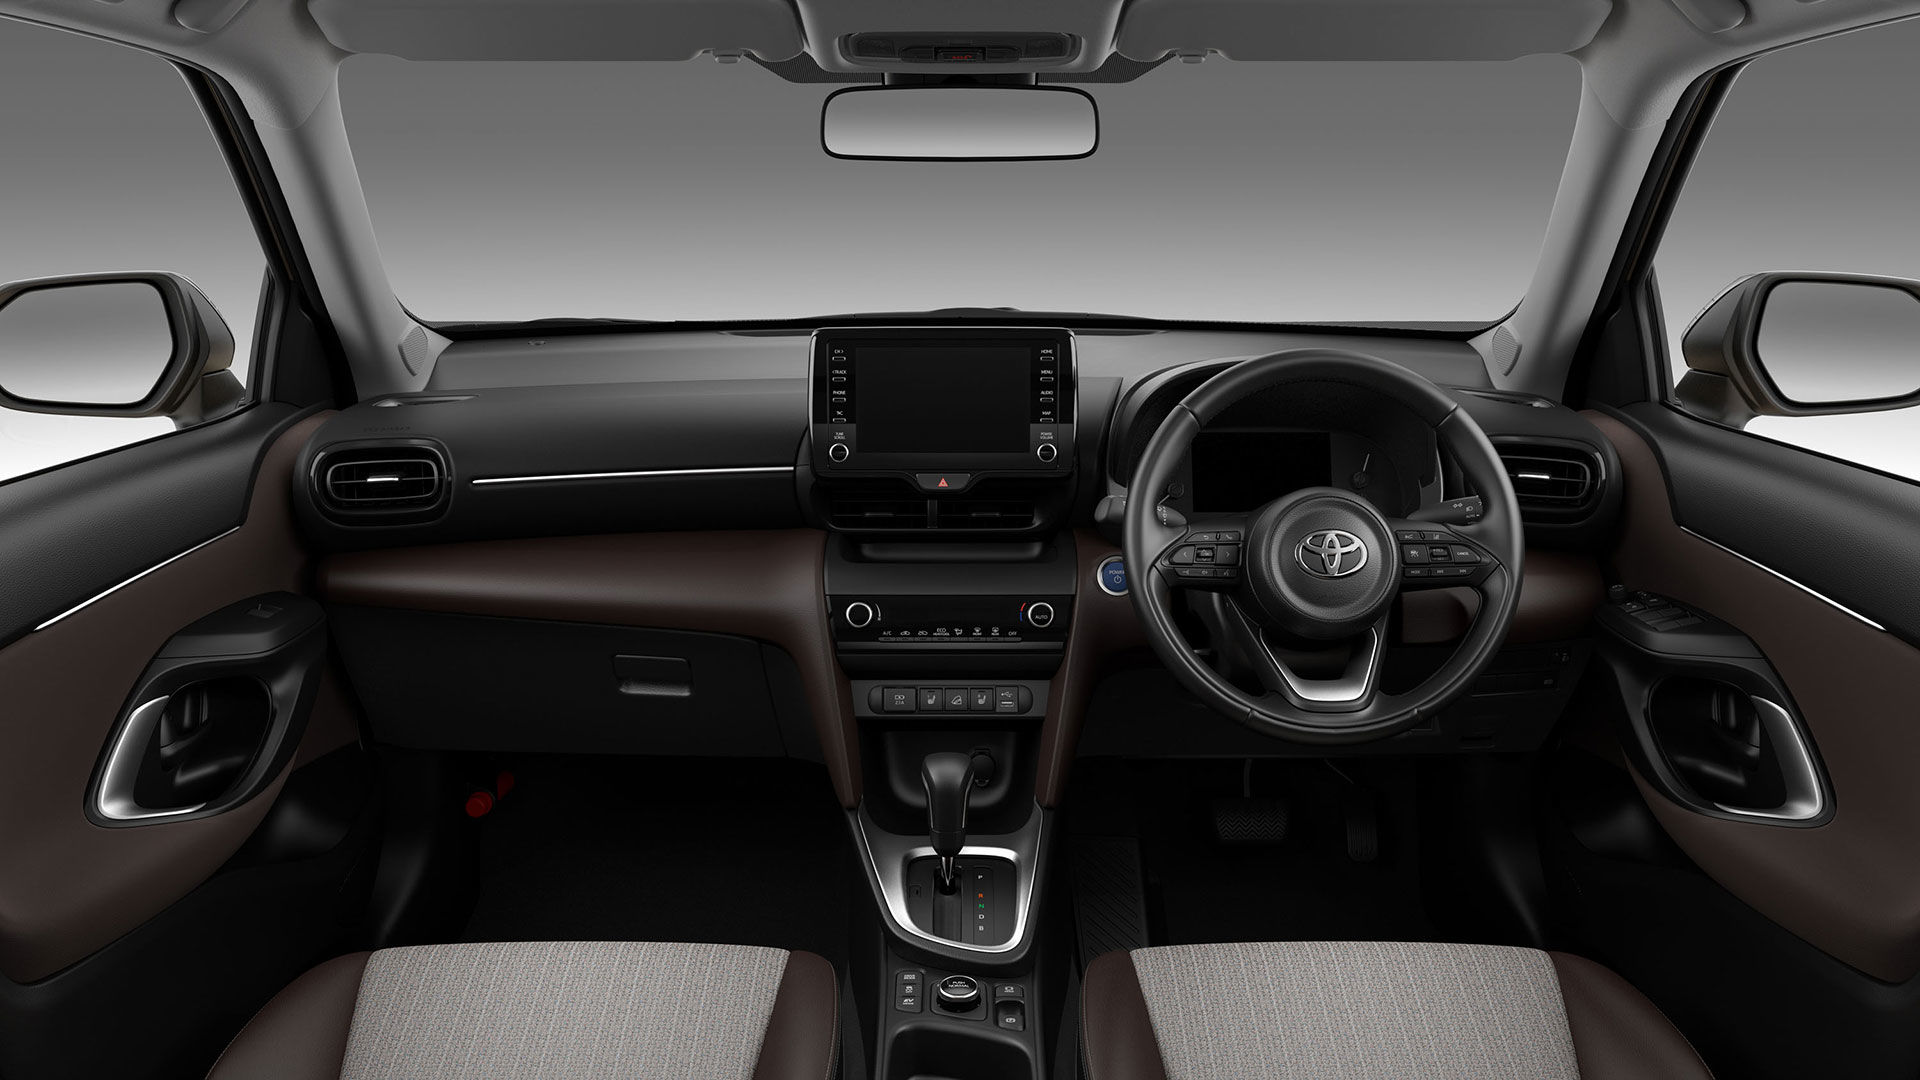 Inside, Yaris Cross has a huge multimedia screen detached from the panel. There is two-zone air conditioning and a three-spoke steering wheel with several satellite commands.